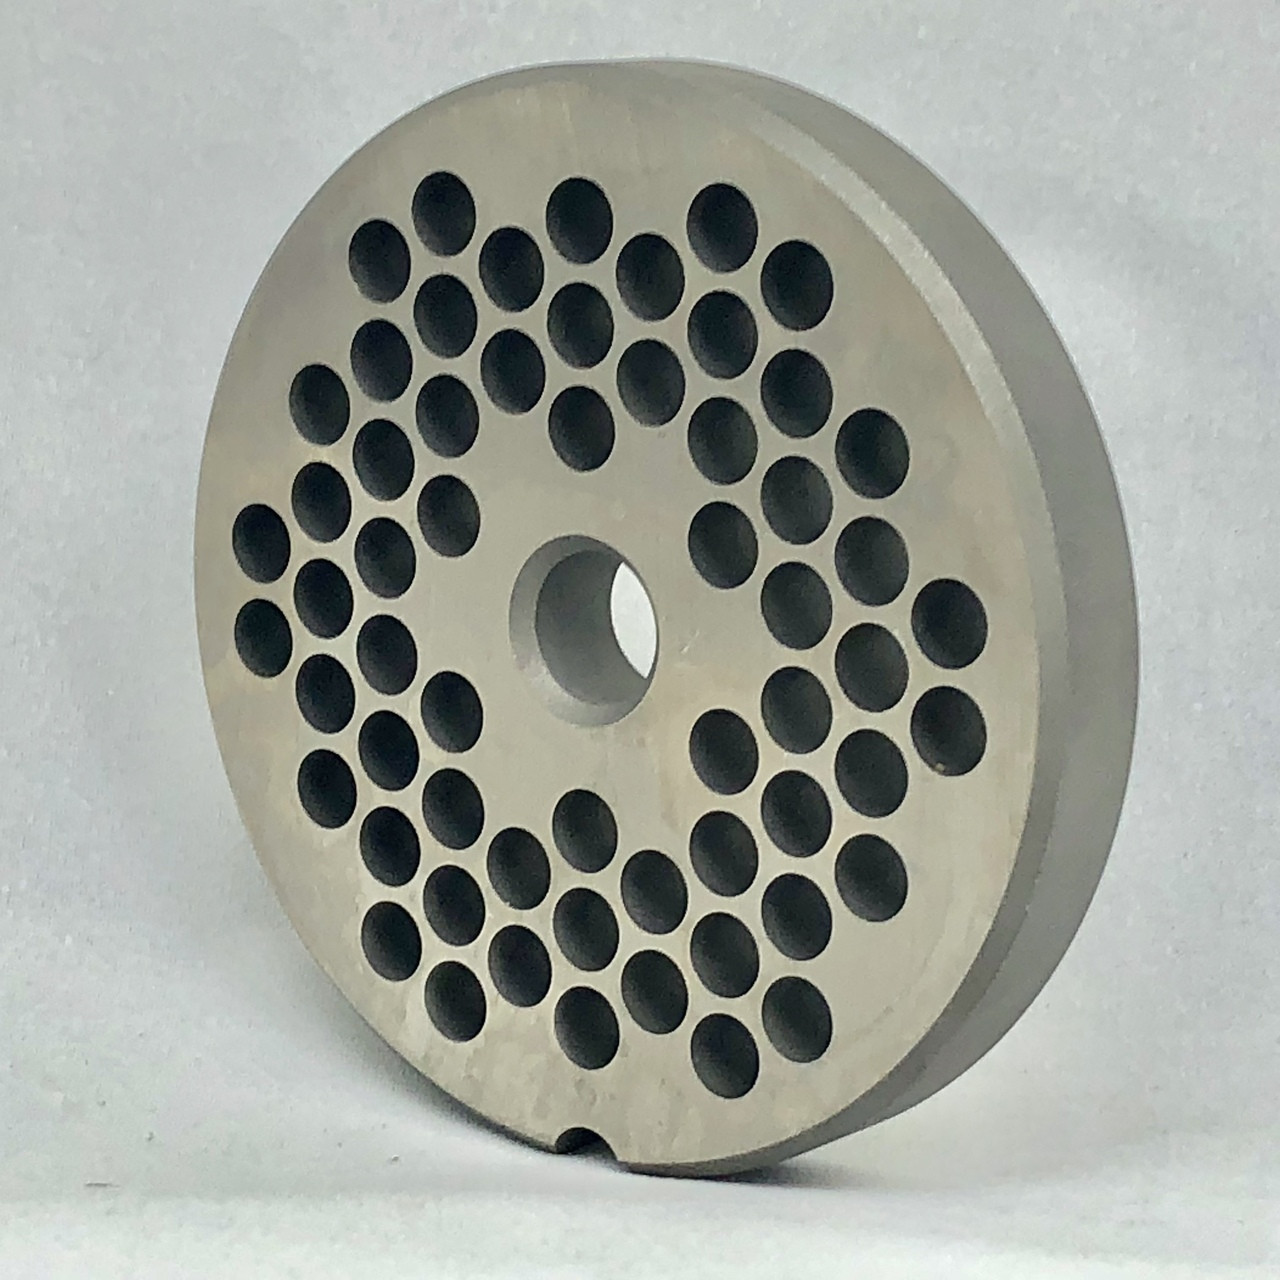 #22 Speco Meat Grinder Plate with 1/4'' Holes - Reversible & Hubbed Plate - 106843 & 103533